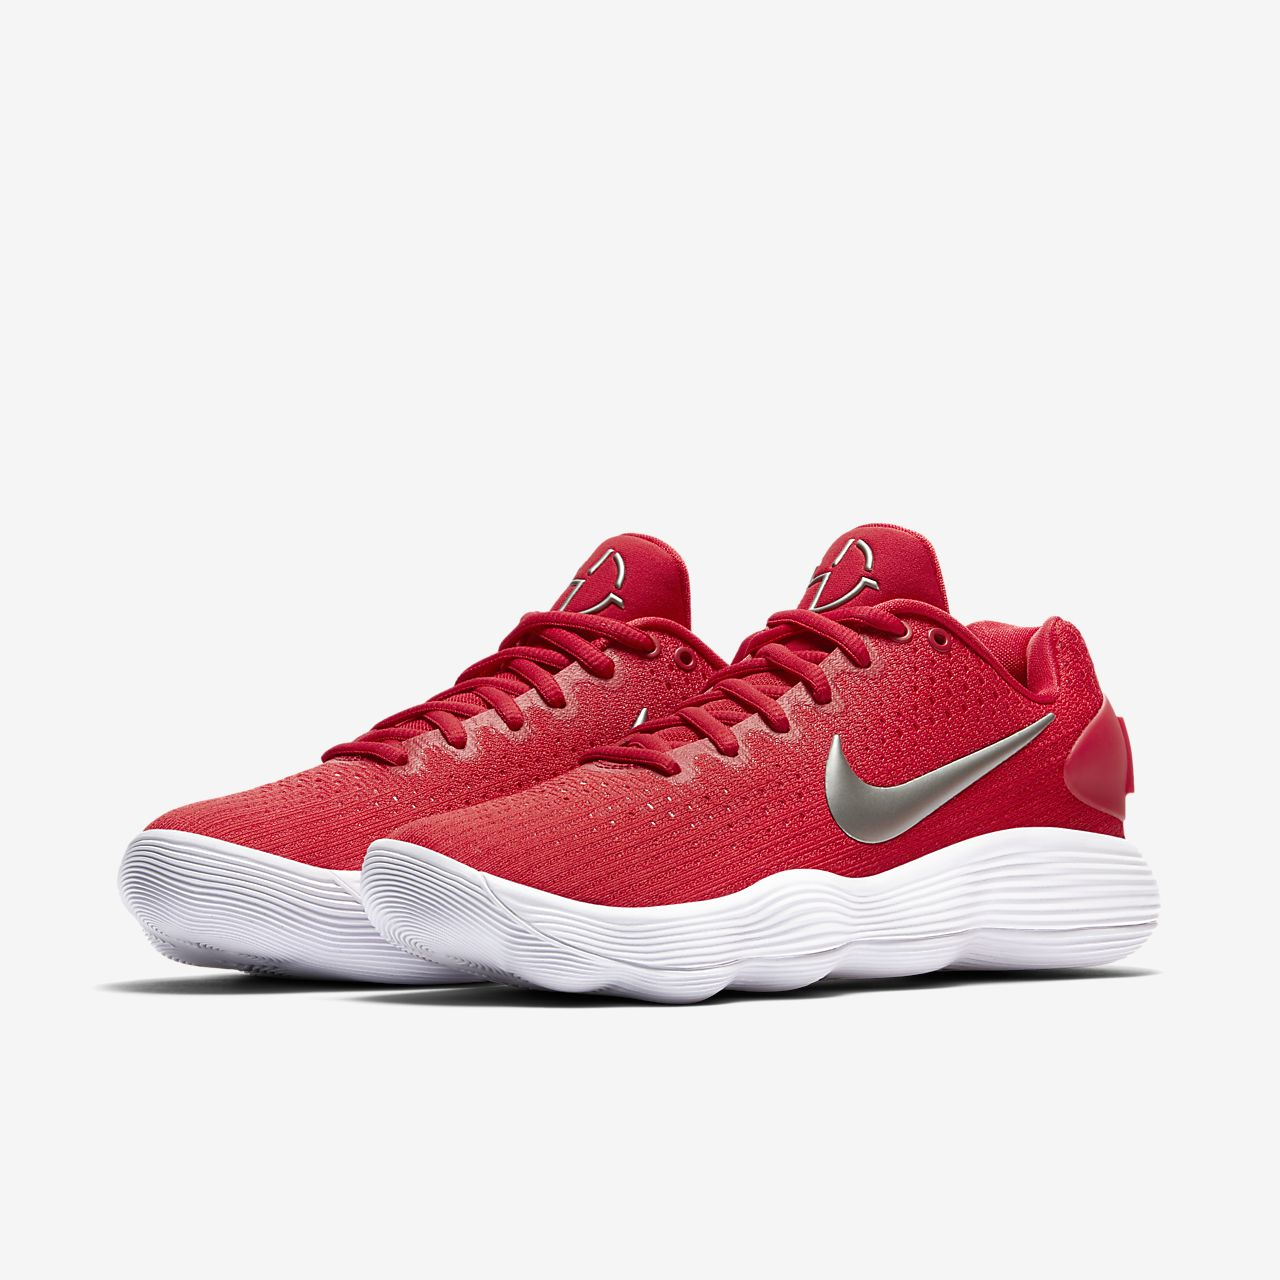 ... Nike Hyperdunk 2017 Low (Team) Women's Basketball Shoe